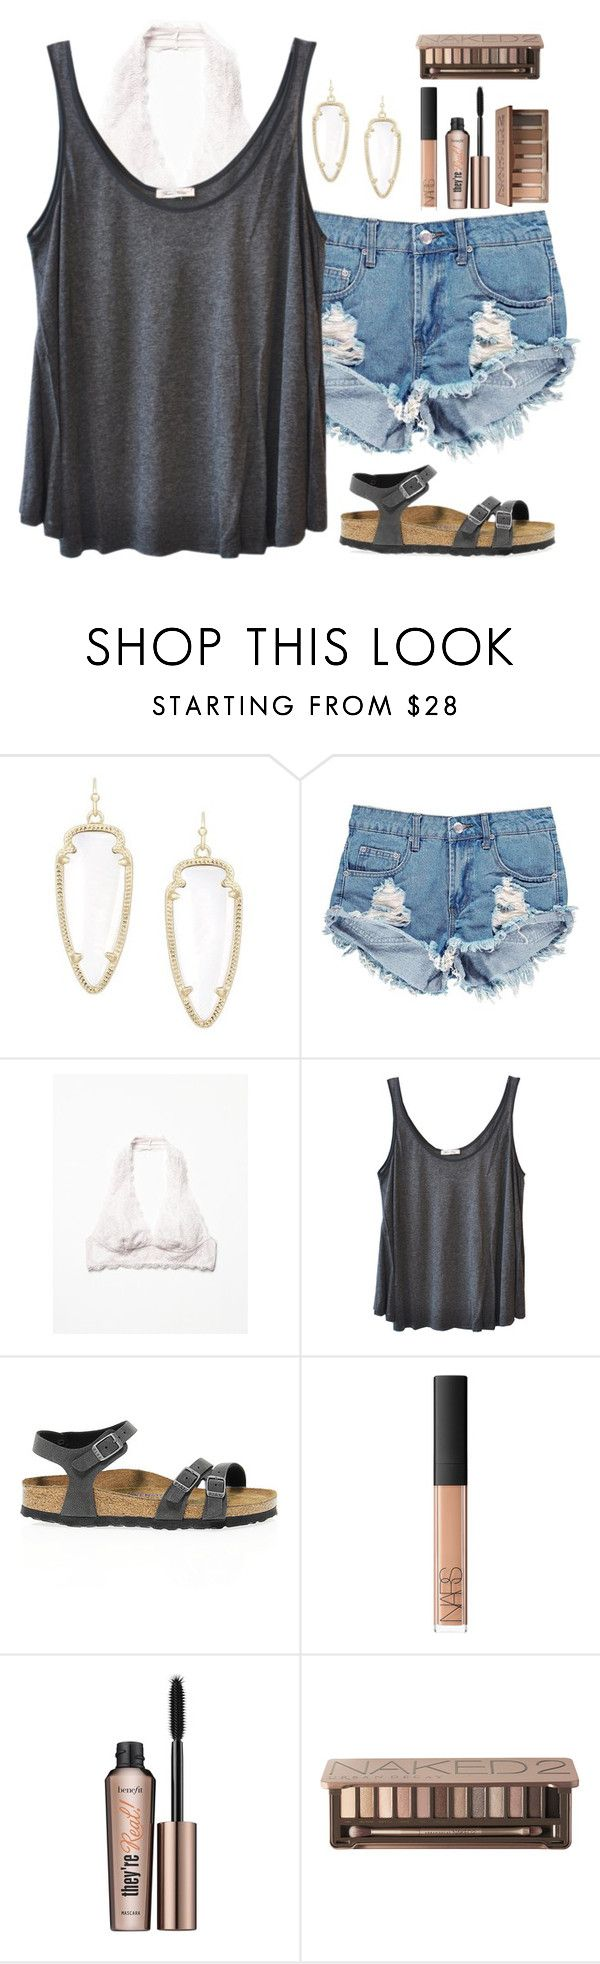 """My taglist Please join (cmt) it looks pretty lonely"" by texas-preppy ❤ liked on Polyvore featuring Kendra Scott, Boohoo, Free People, American Vintage, Birkenstock, NARS Cosmetics, Benefit, Urban Decay, women's clothing and women"